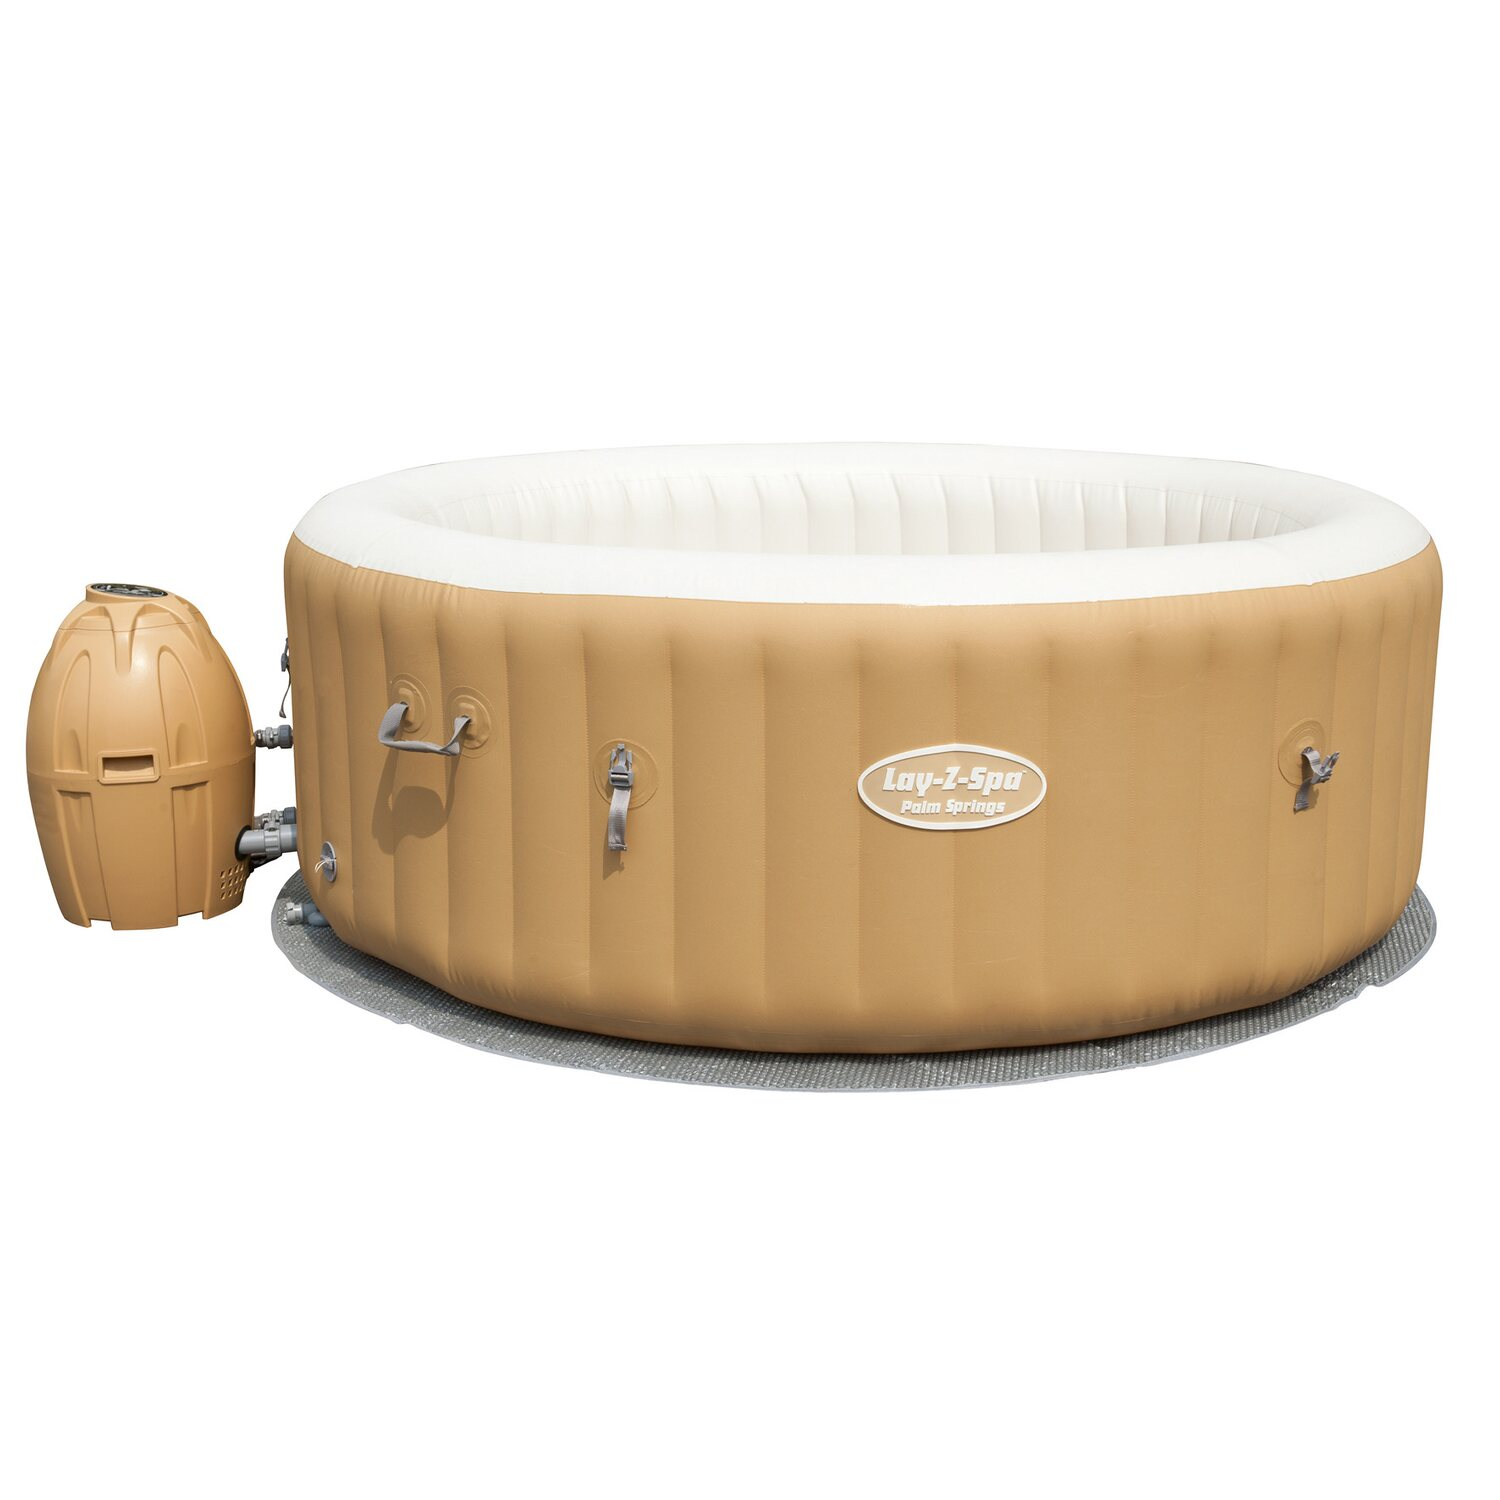 Bestway lay z spa whirlpool palm springs f r 6 personen for Bestway pool bei obi